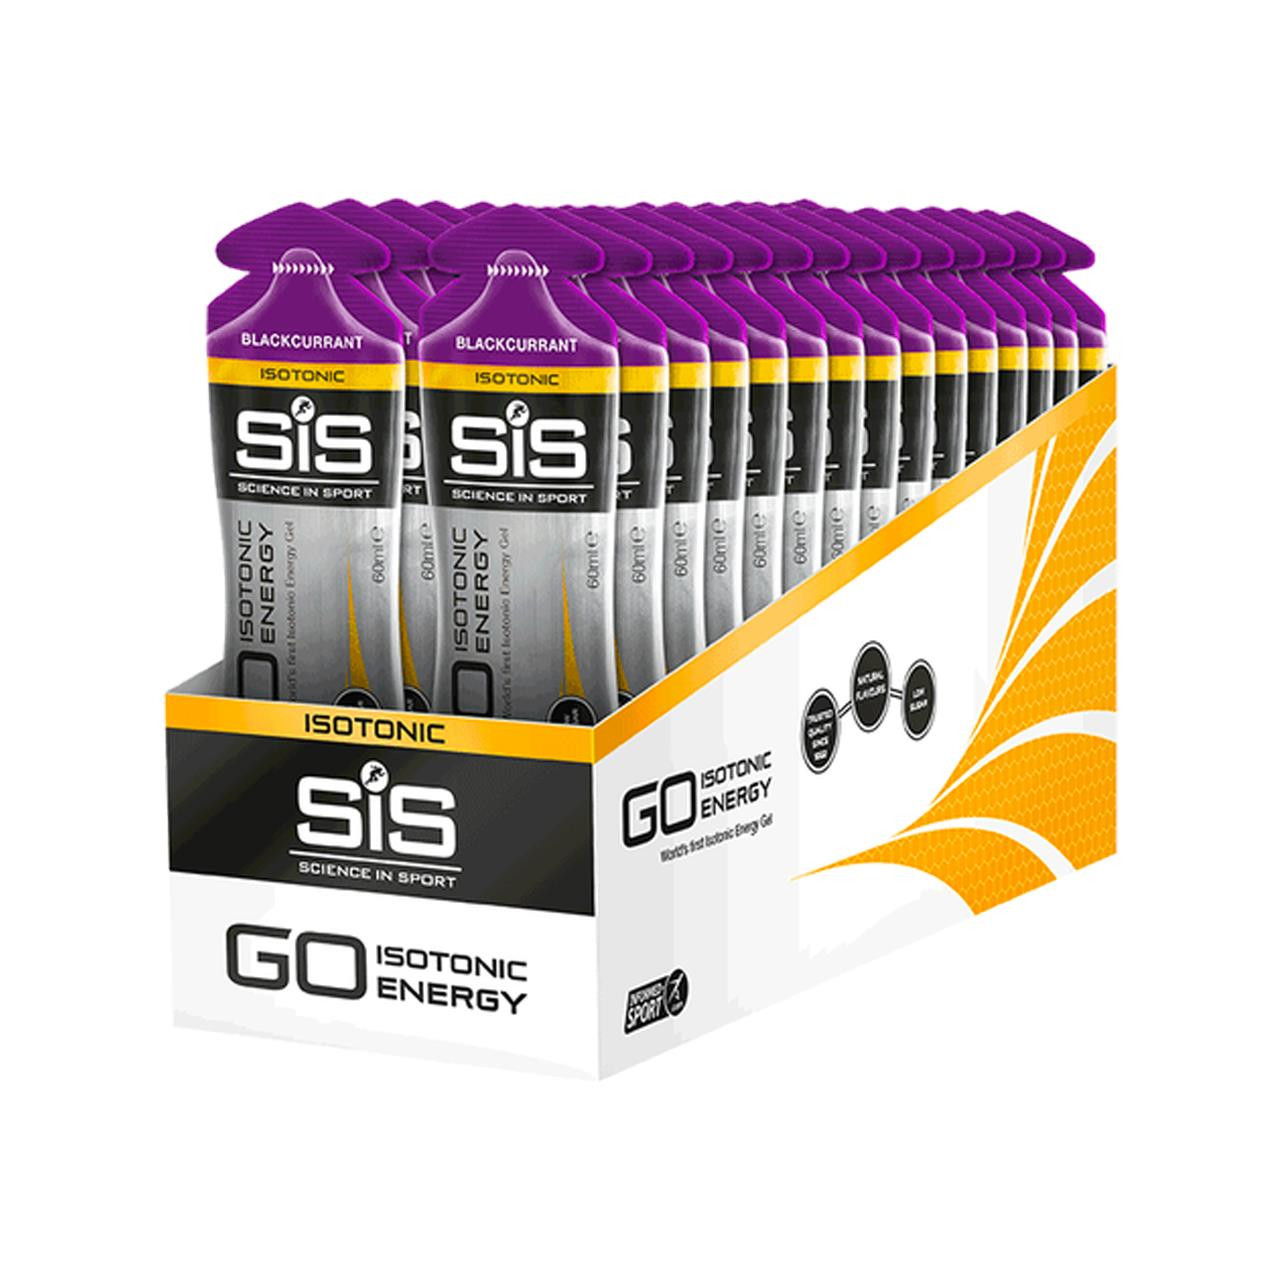 Science In Sport GO Isotonic Gel, 30 Pack (Blackcurrant)